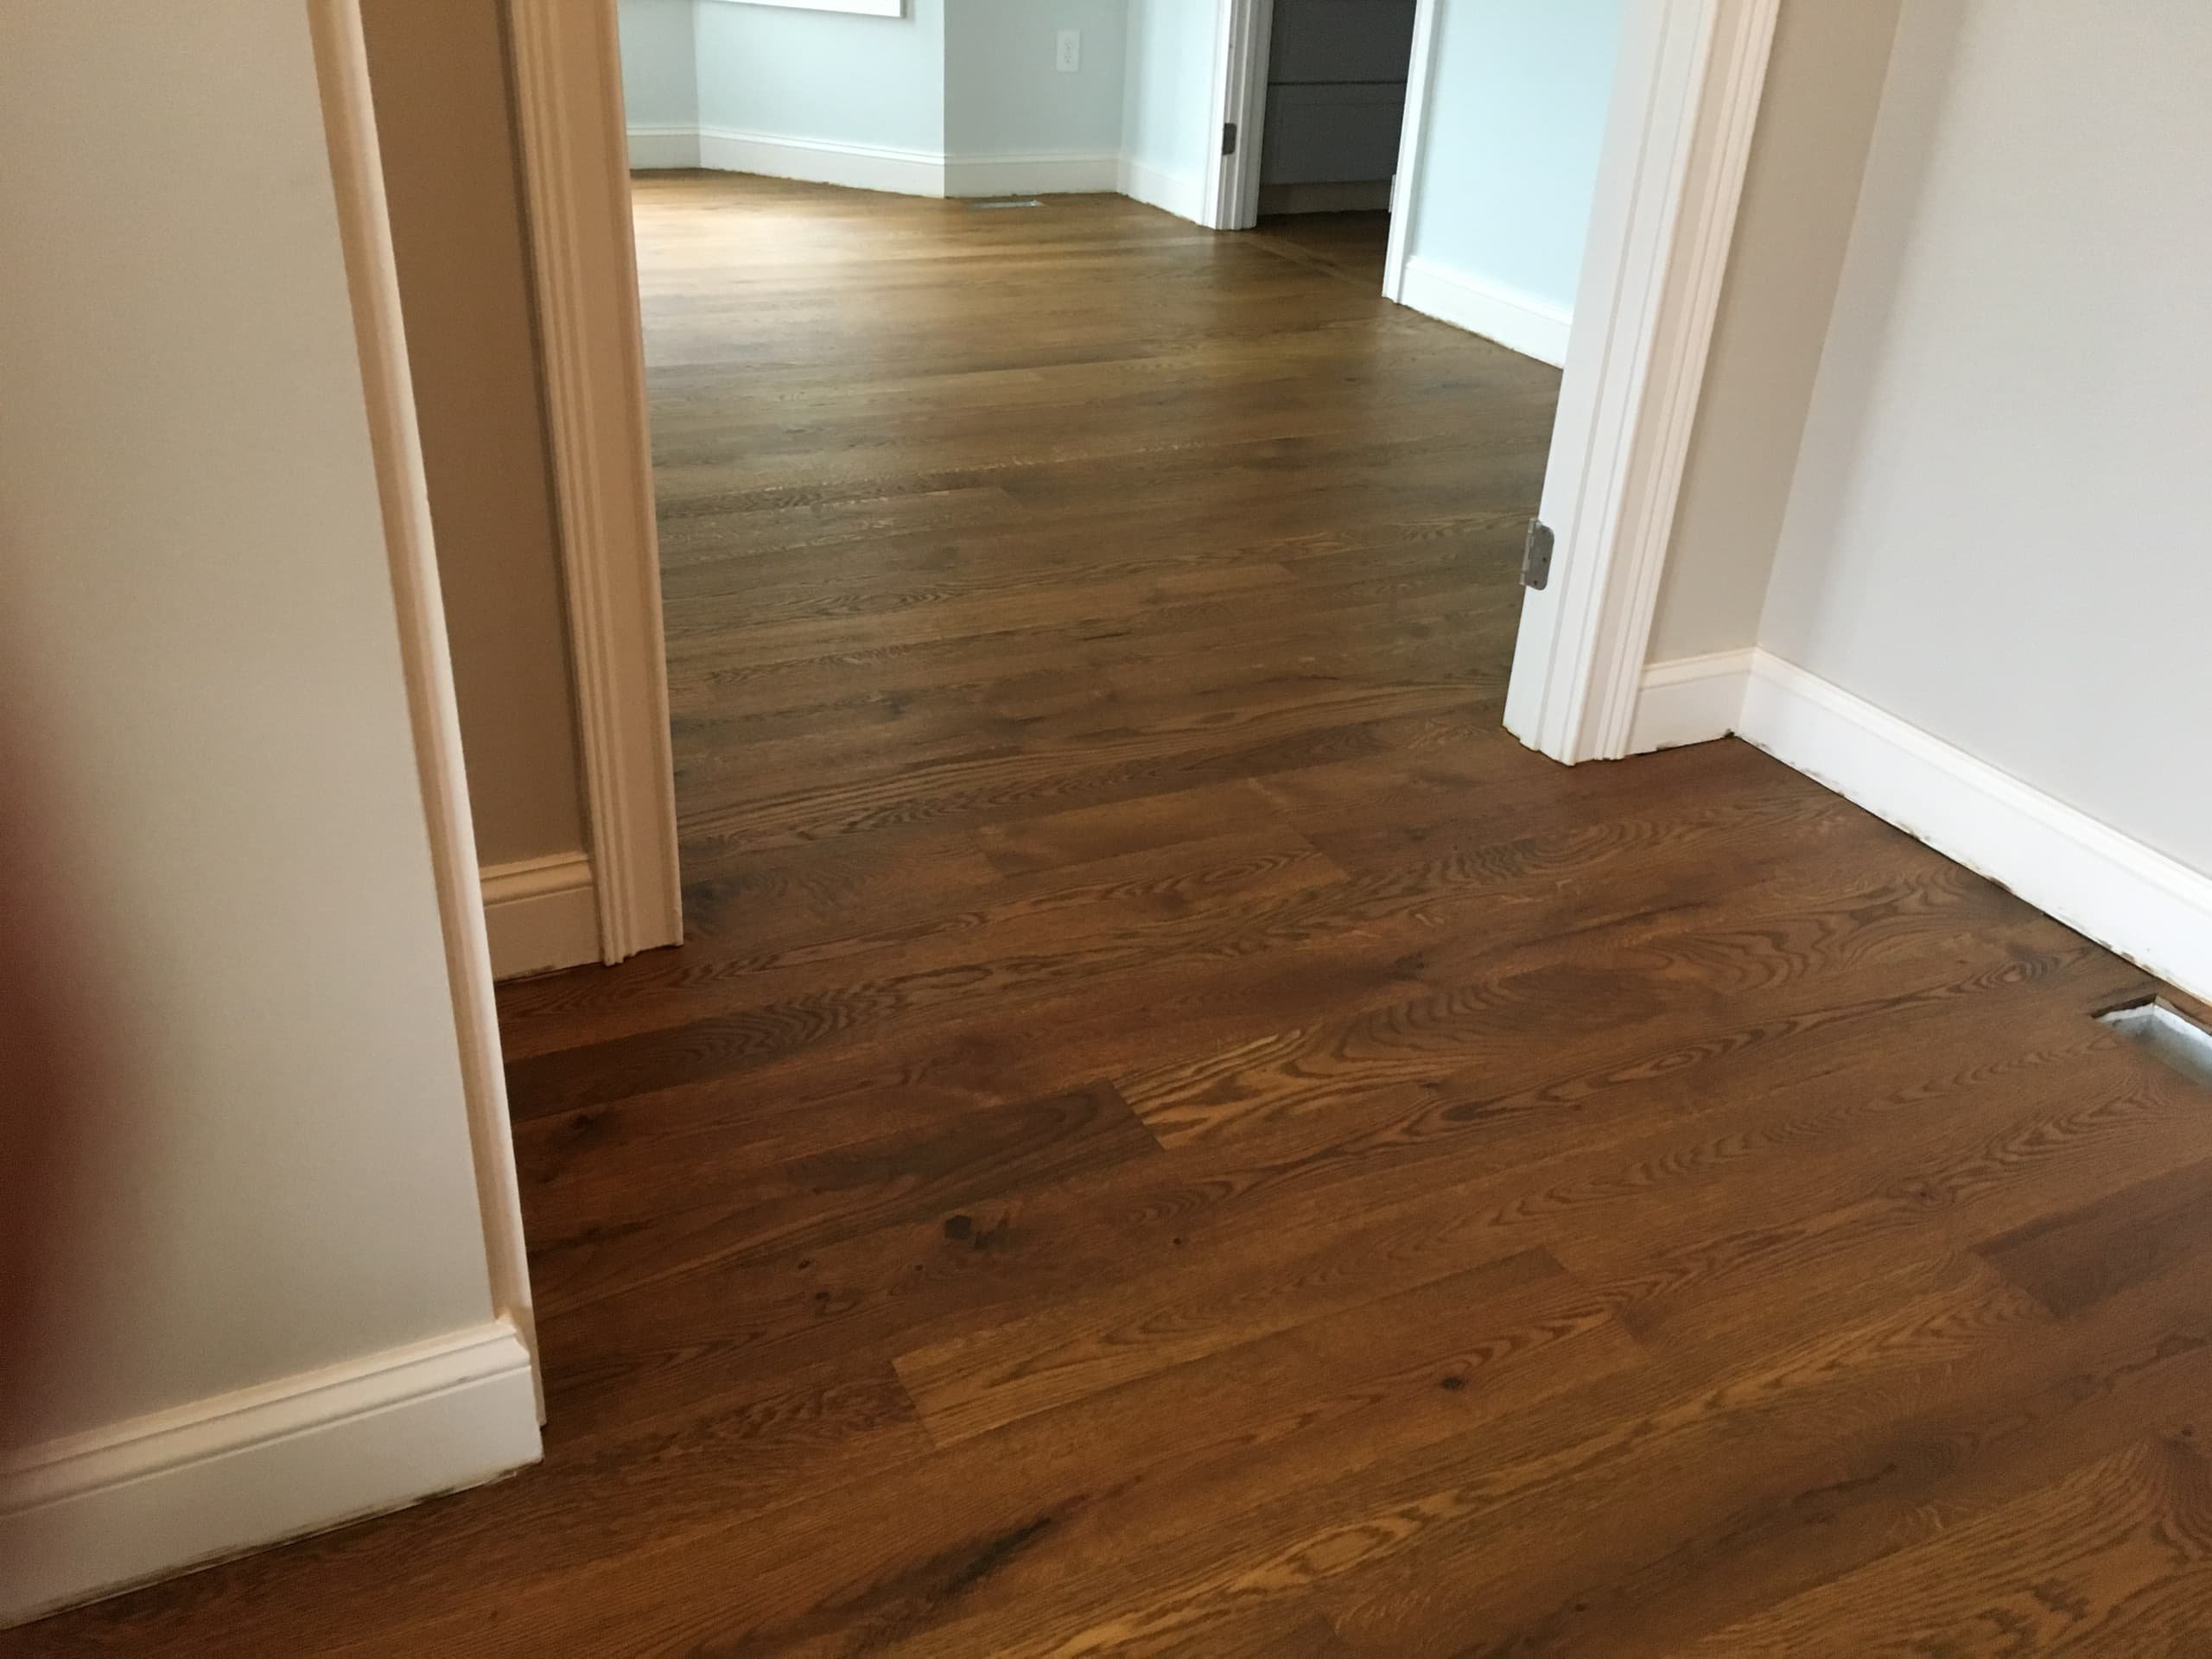 4, 5, 6 inch sound character white oak with Monocoat Dark Oak finish